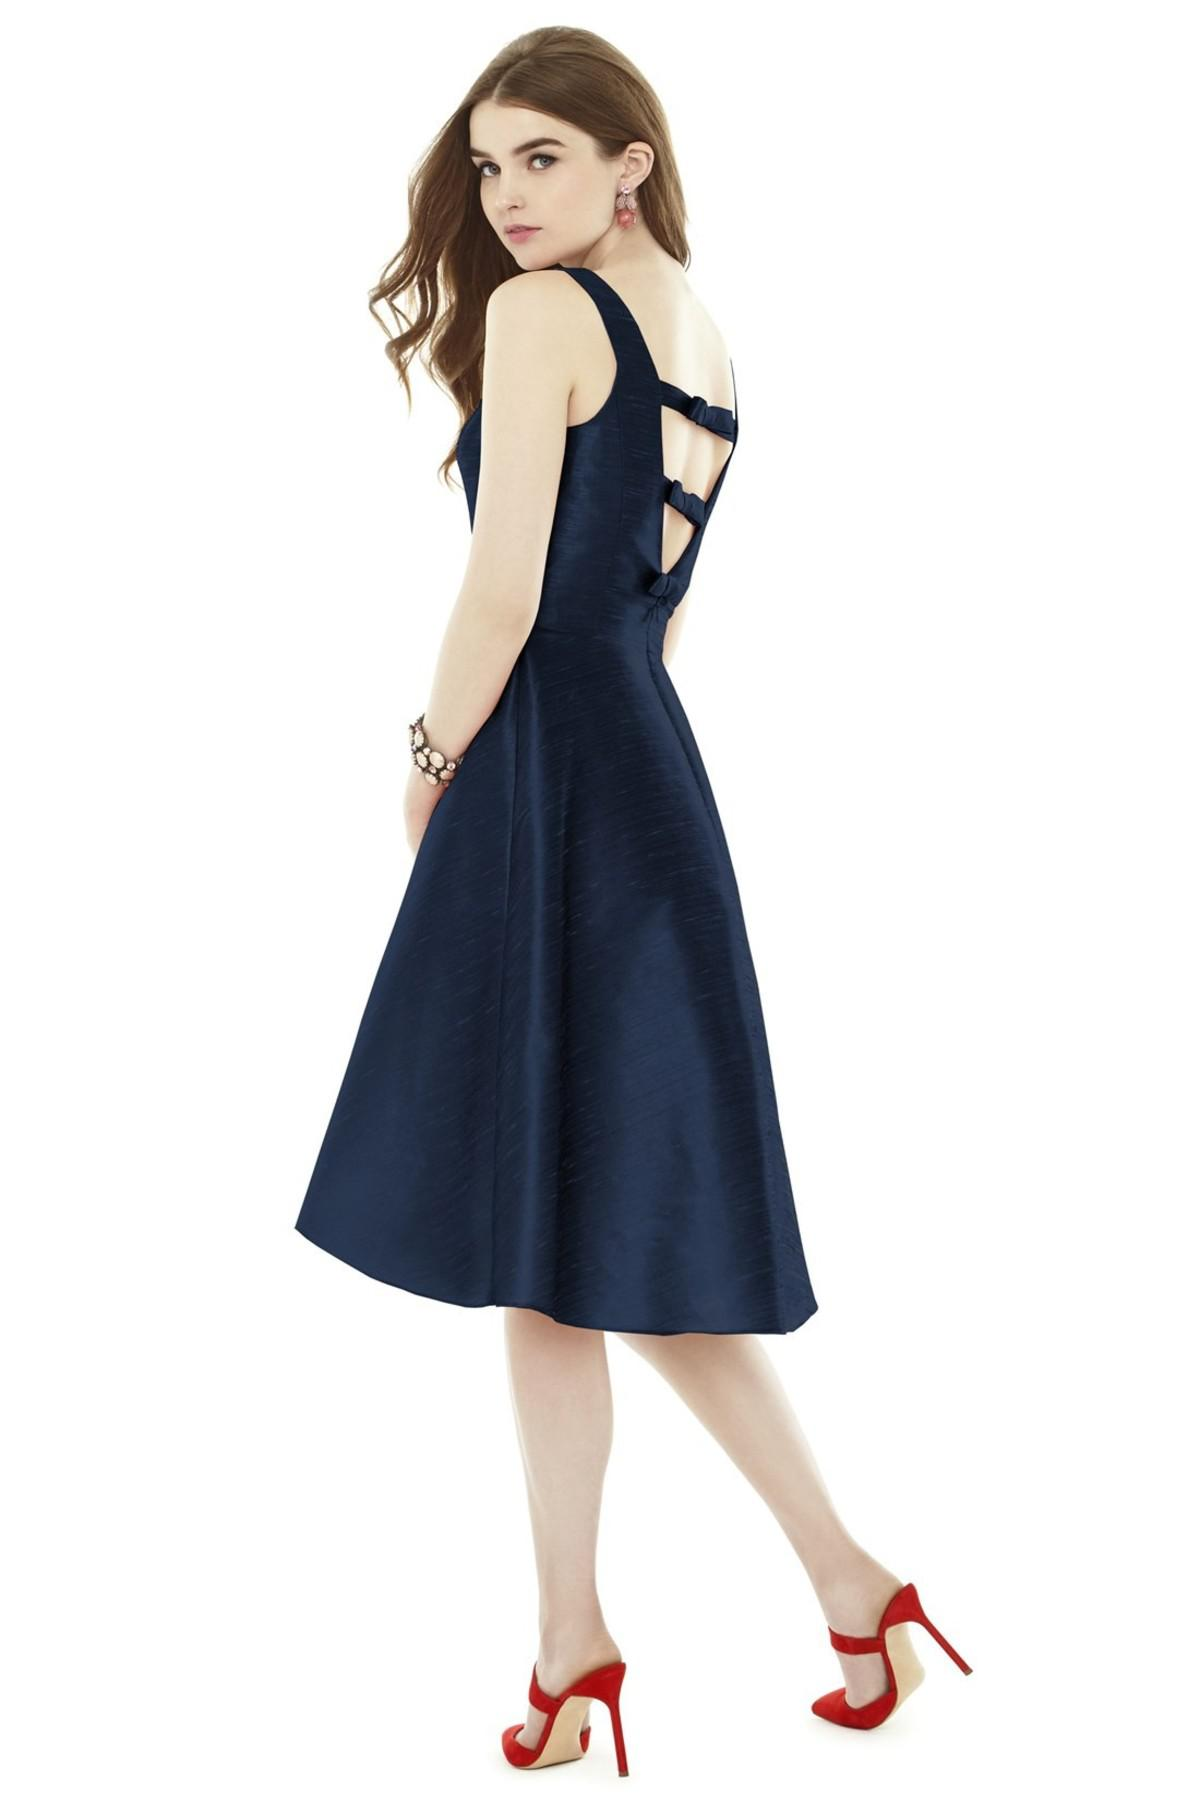 Lyst - Alfred Sung Bow Back Dupioni Fit & Flare Midi Dress in Blue